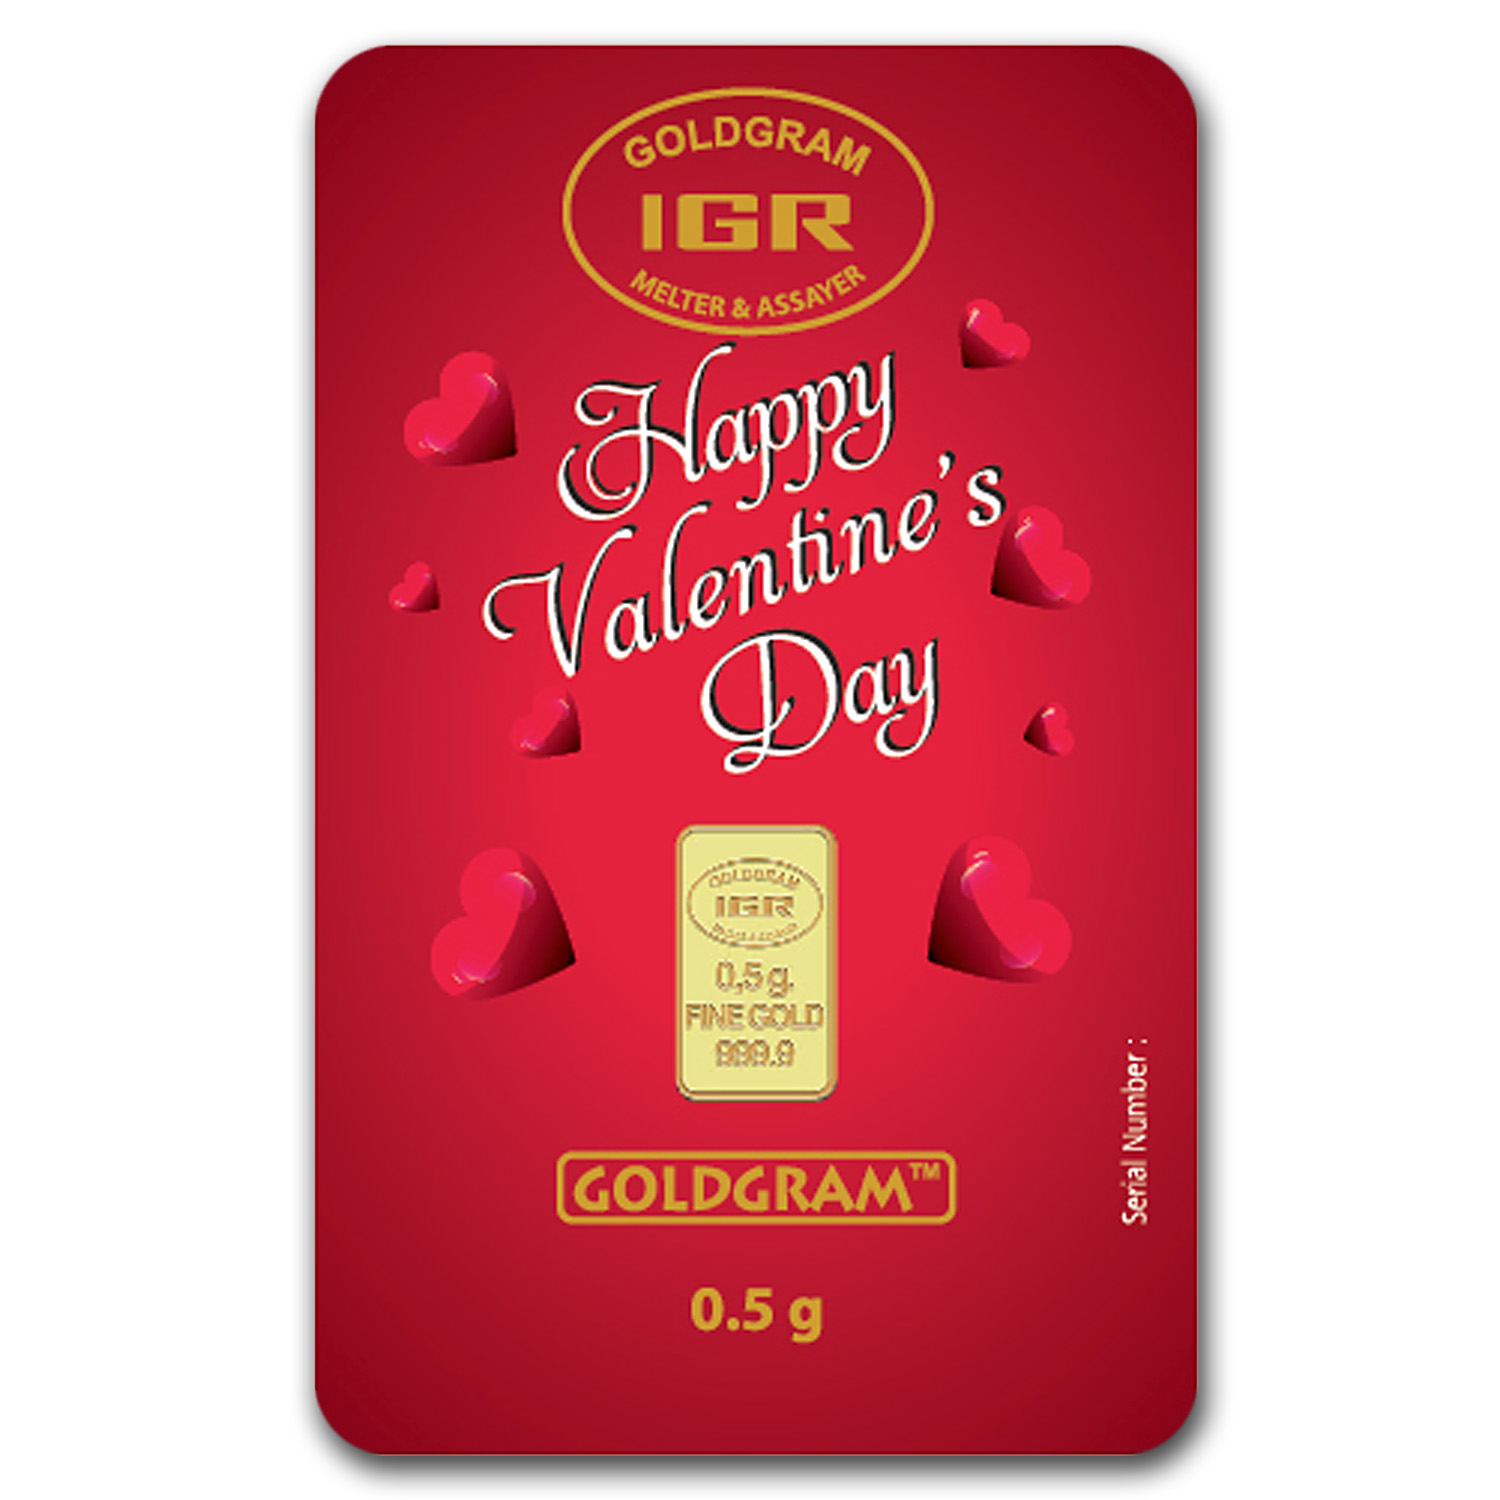 1/2 gram Gold Bar - Istanbul Gold Refinery (Valentine's Day)